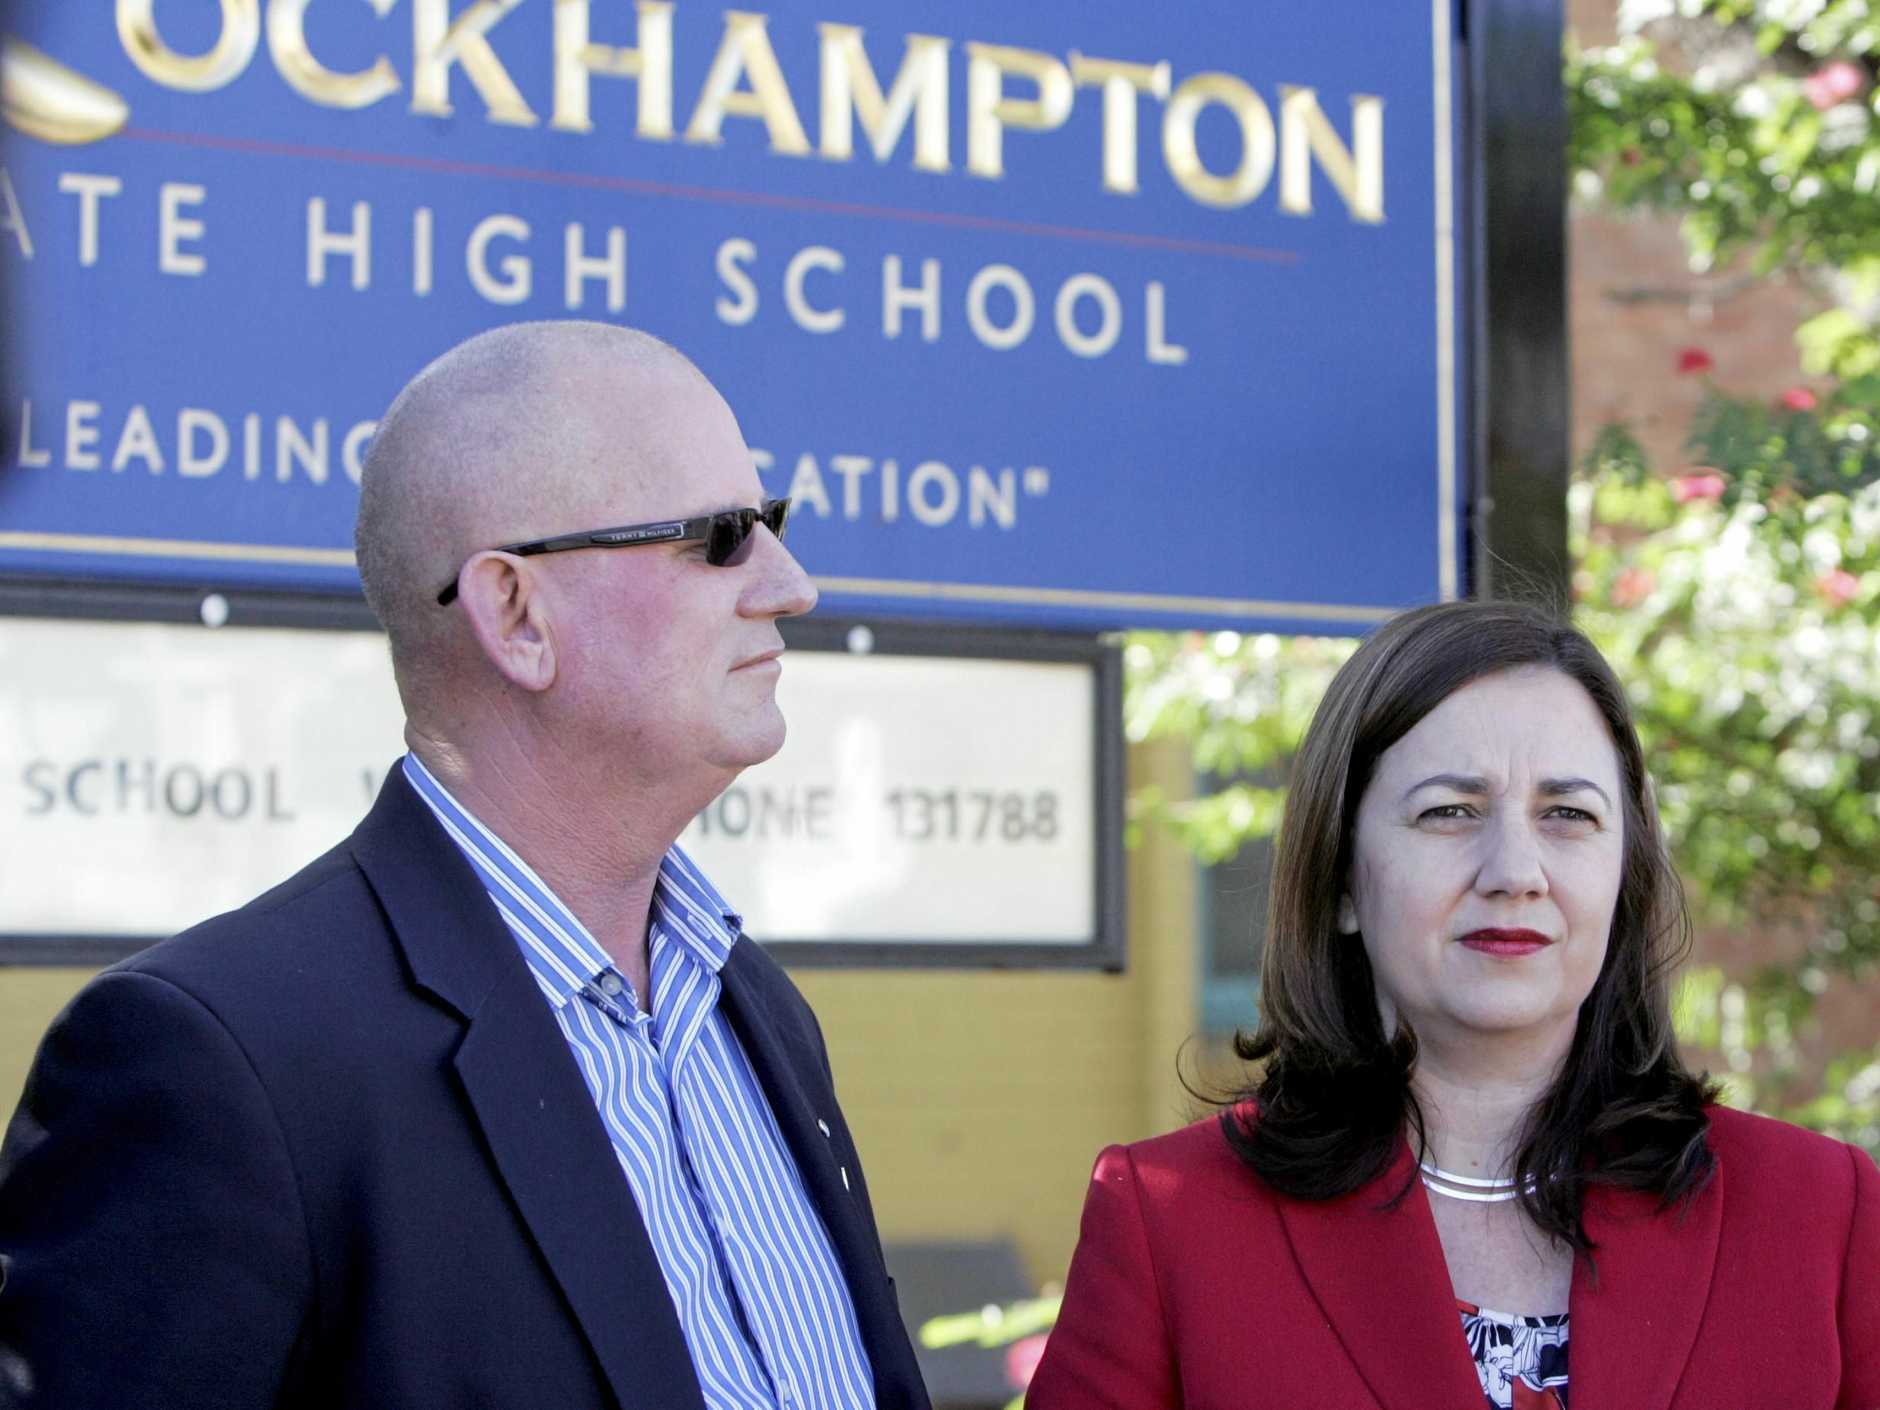 Opposition leader Annastacia Palaszczuk and Member for Rockhampton Bill Byrne at Rockhampton High School. Concern over job losses intended by Government.         Photo Sharyn O'Neill / The Morning Bulletin